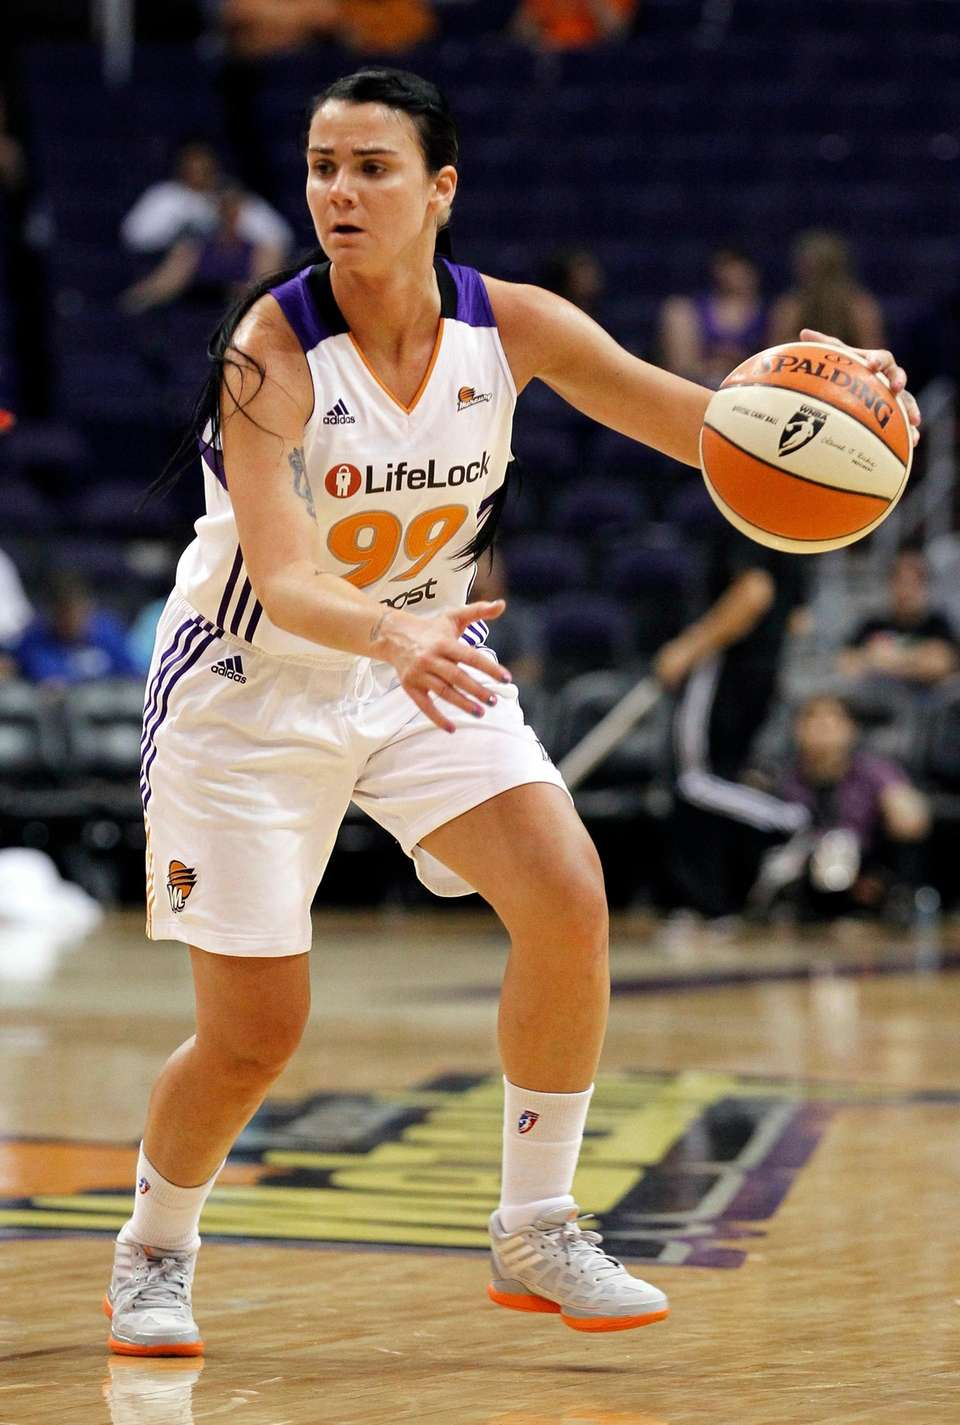 High school: Commack WNBA: Phoenix Mercury (2012-13), New